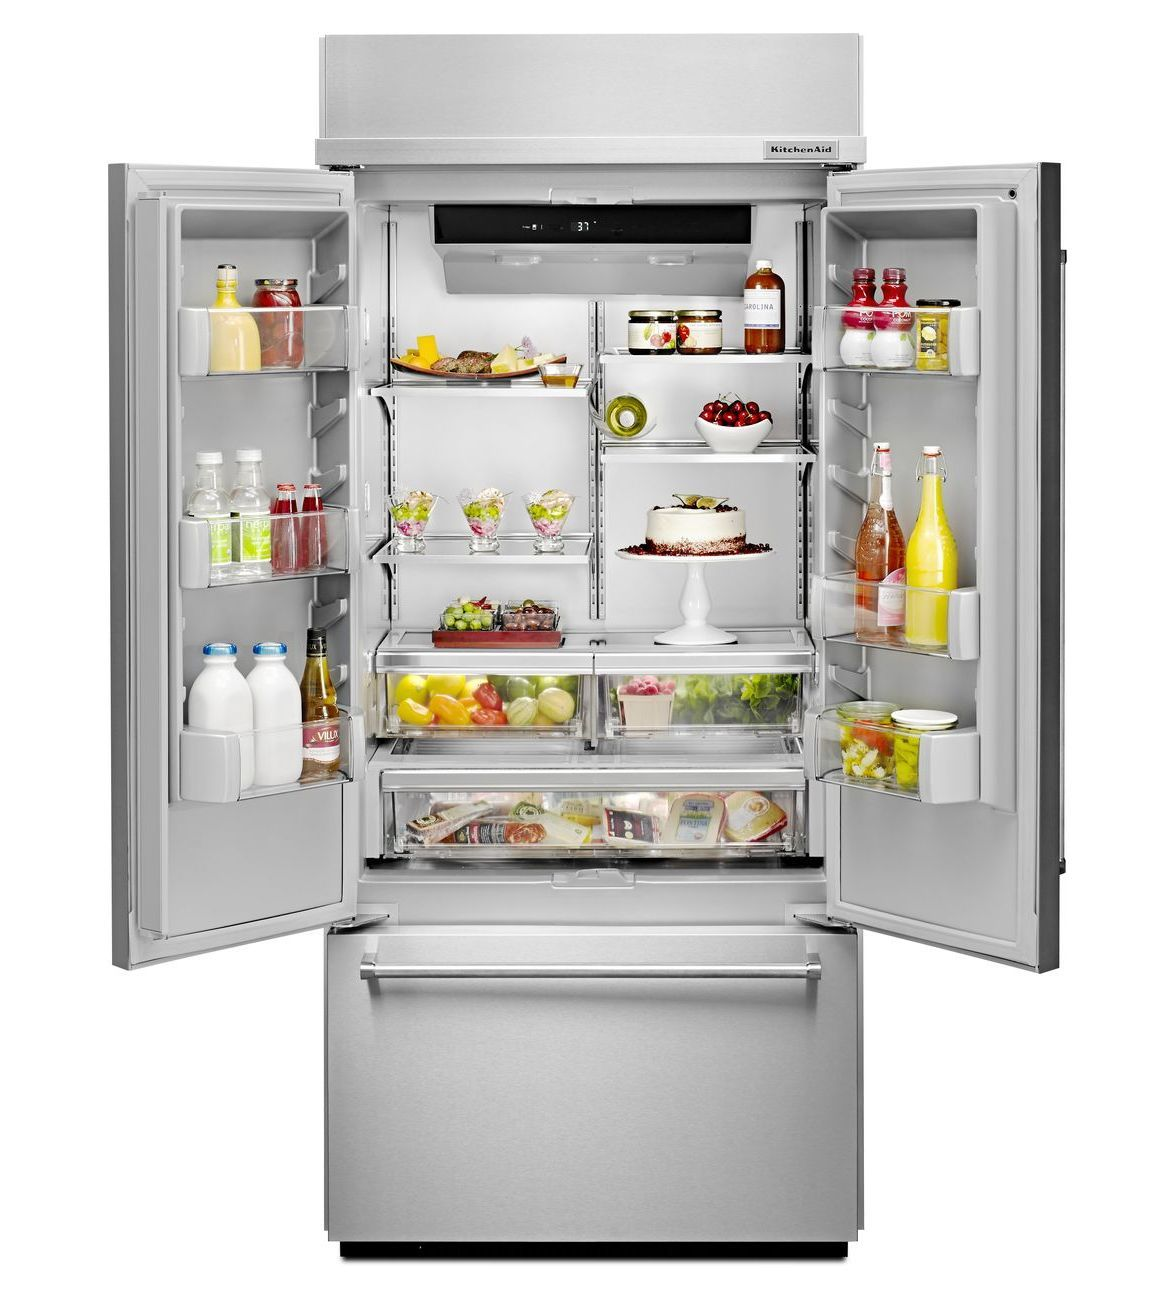 Buy New KitchenAid Built In Refrigerator + Single Wall Oven At Online Store